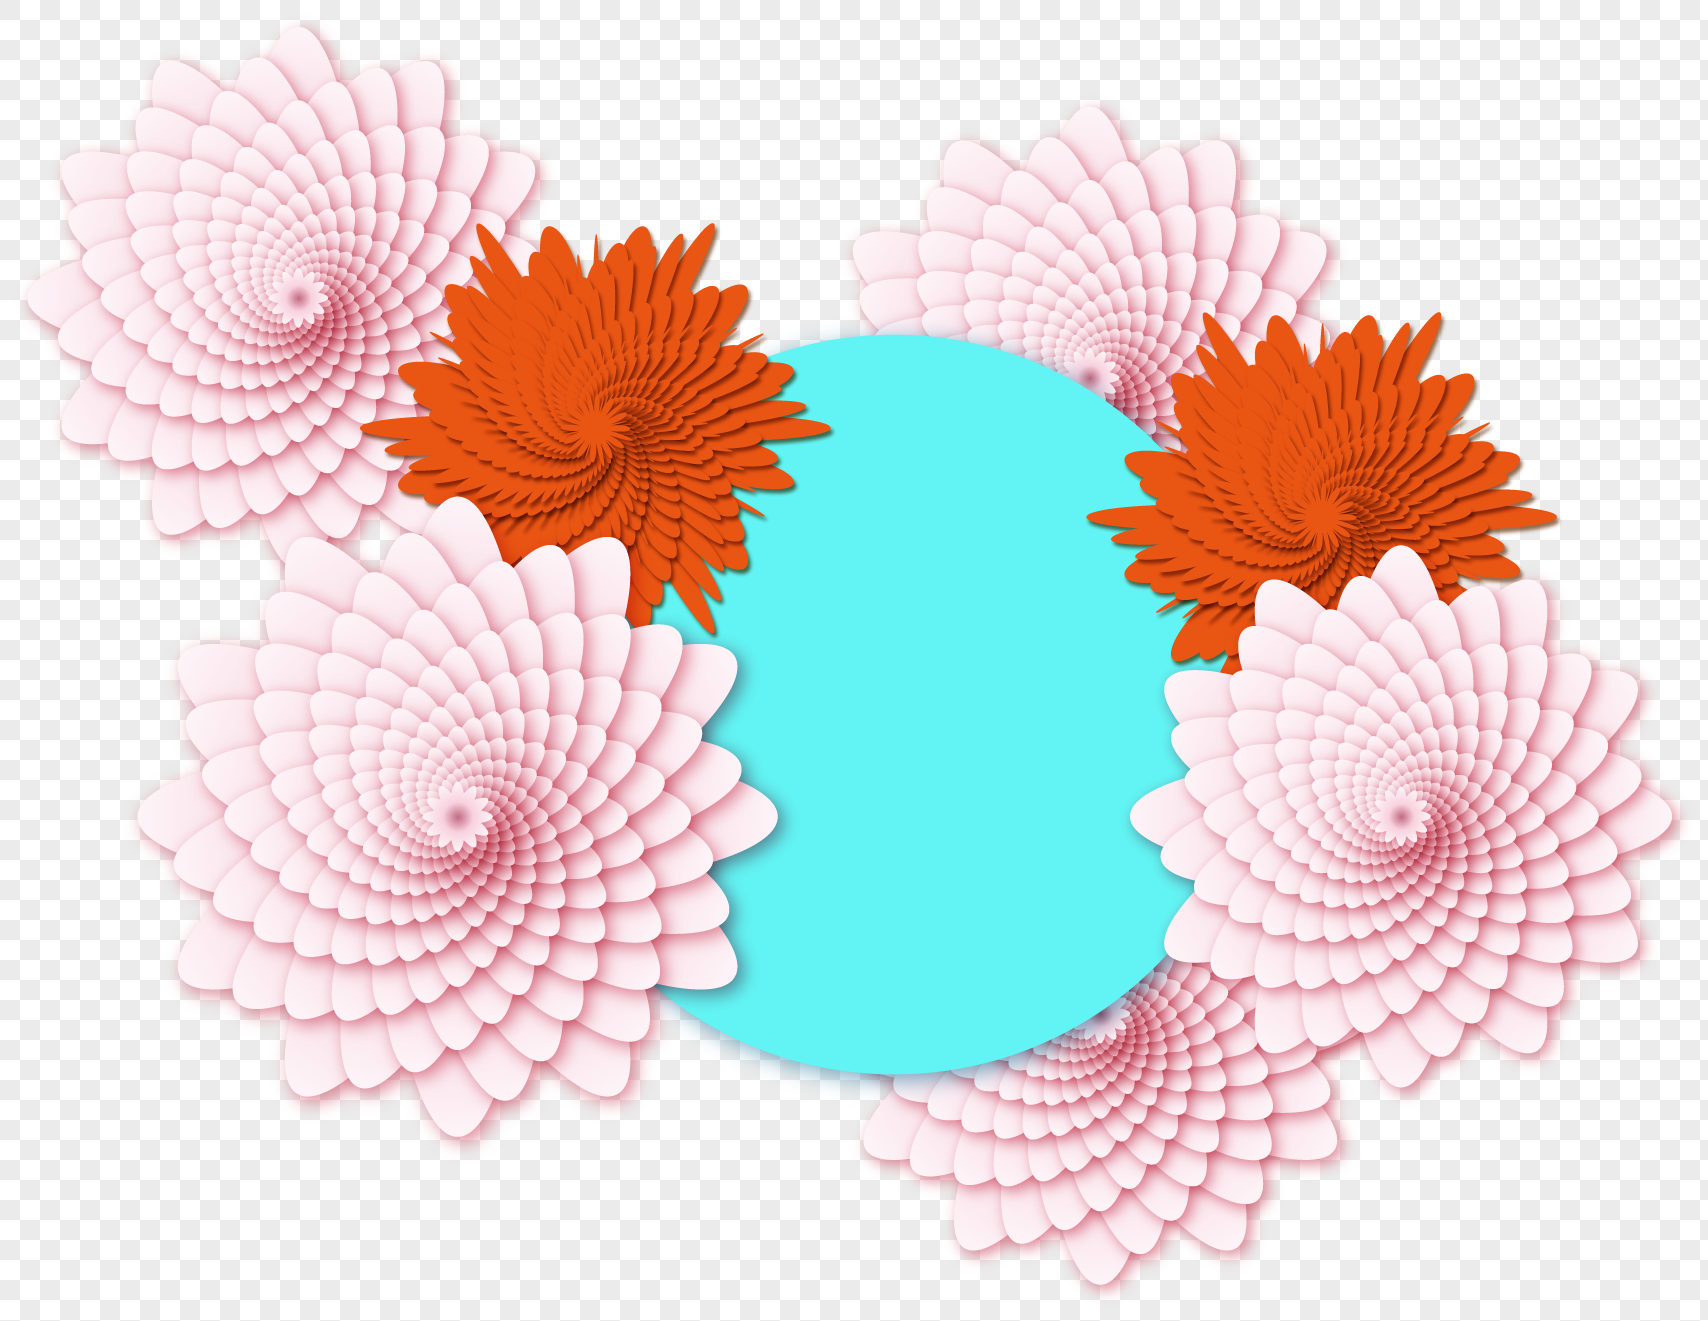 Creative Paper Cut Flowers Png Imagepicture Free Download